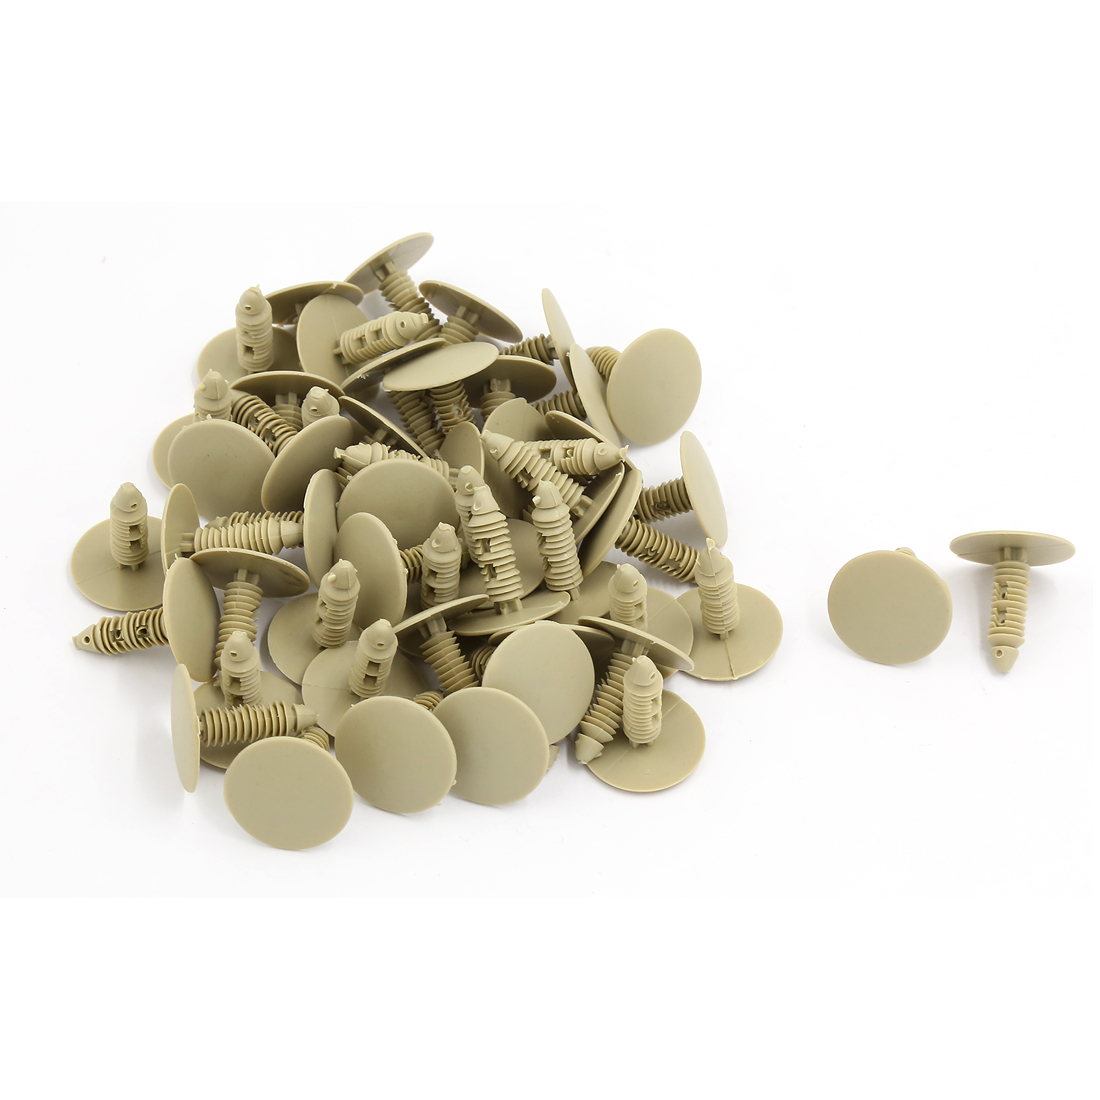 50 Pcs Khaki Plastic Rivet Trim Fastener Moulding Clips 7.5mm Hole Dia